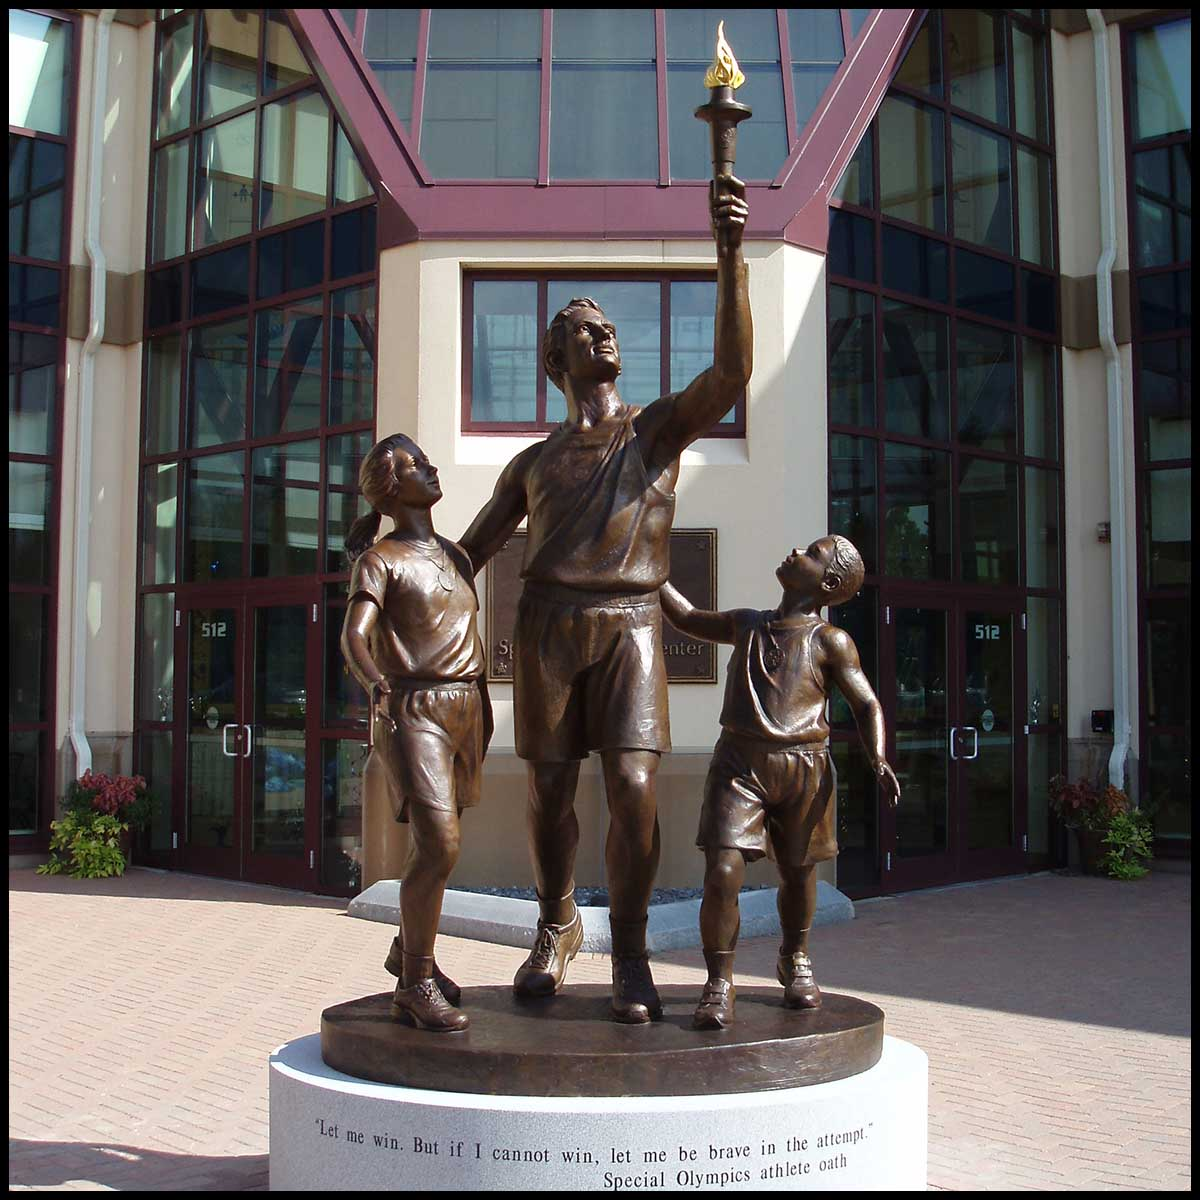 photo of bronze sculpture of man holding up Olympic torch with a boy and girl at his sides, placed on round stone base in plaza in front of building